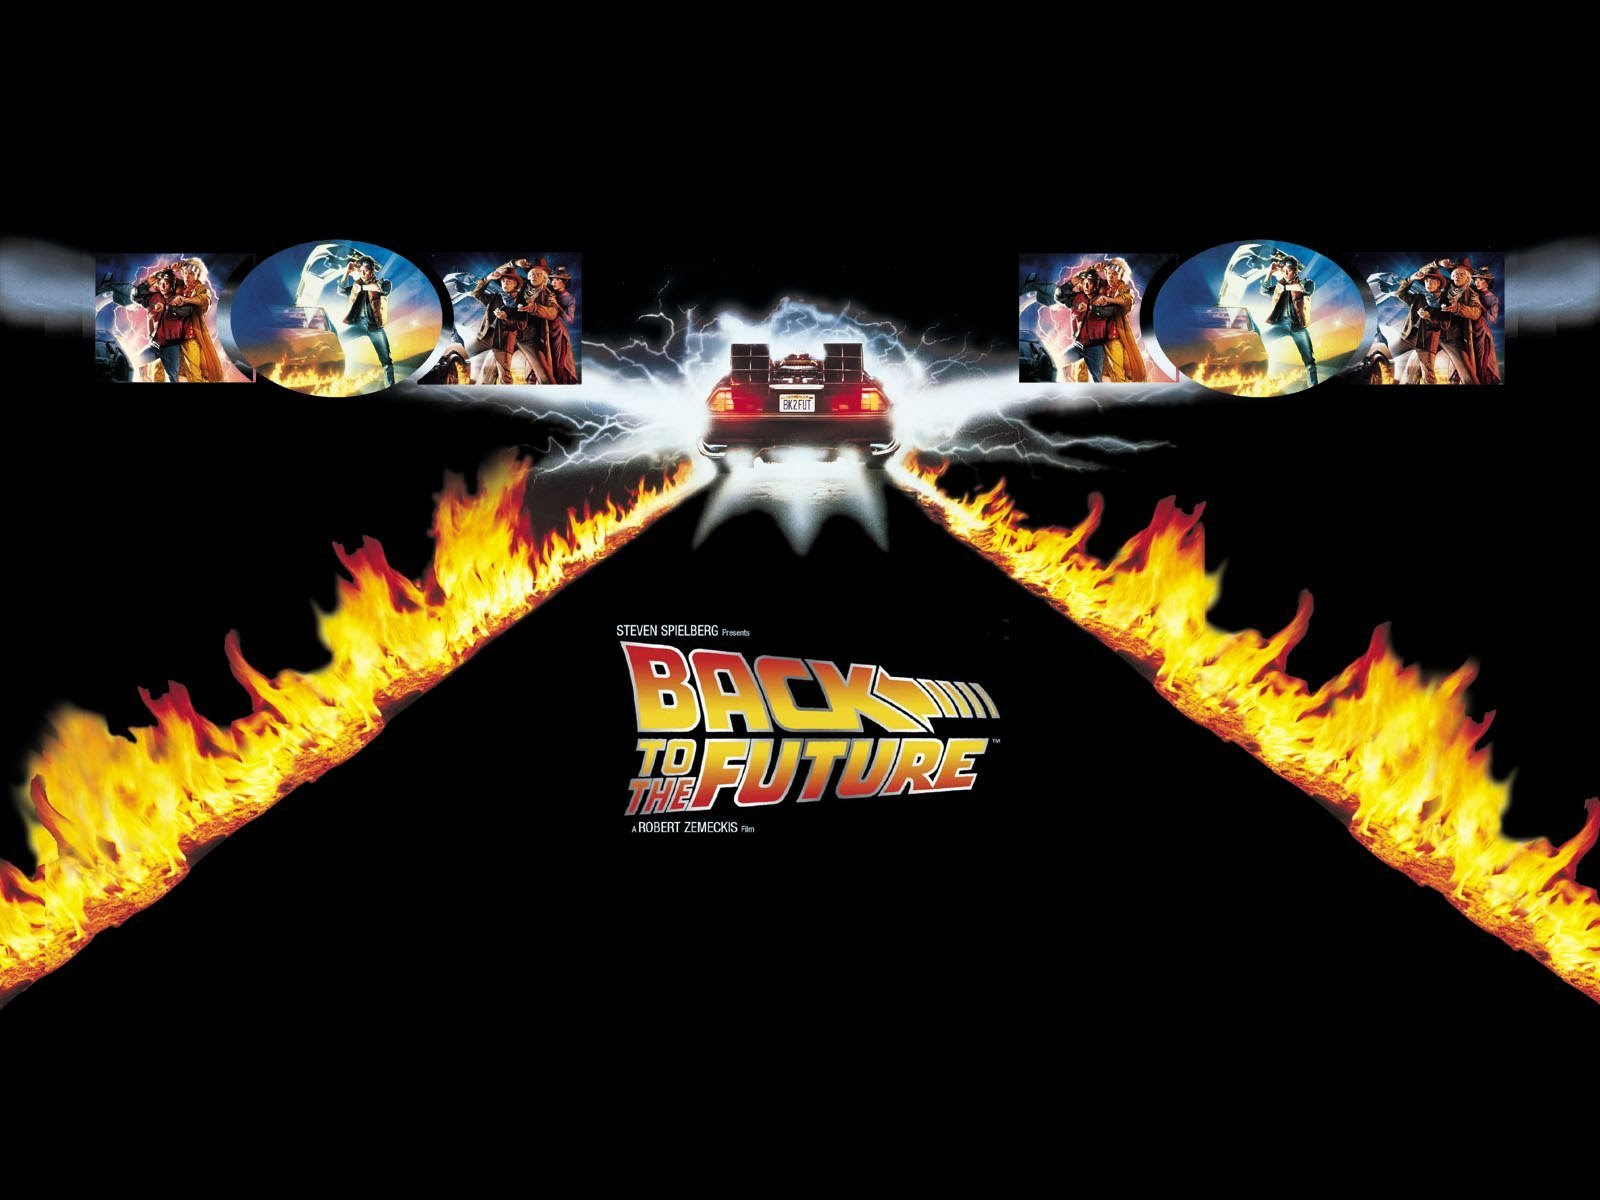 Back To The Future Wallpaper 1600x1200 5528